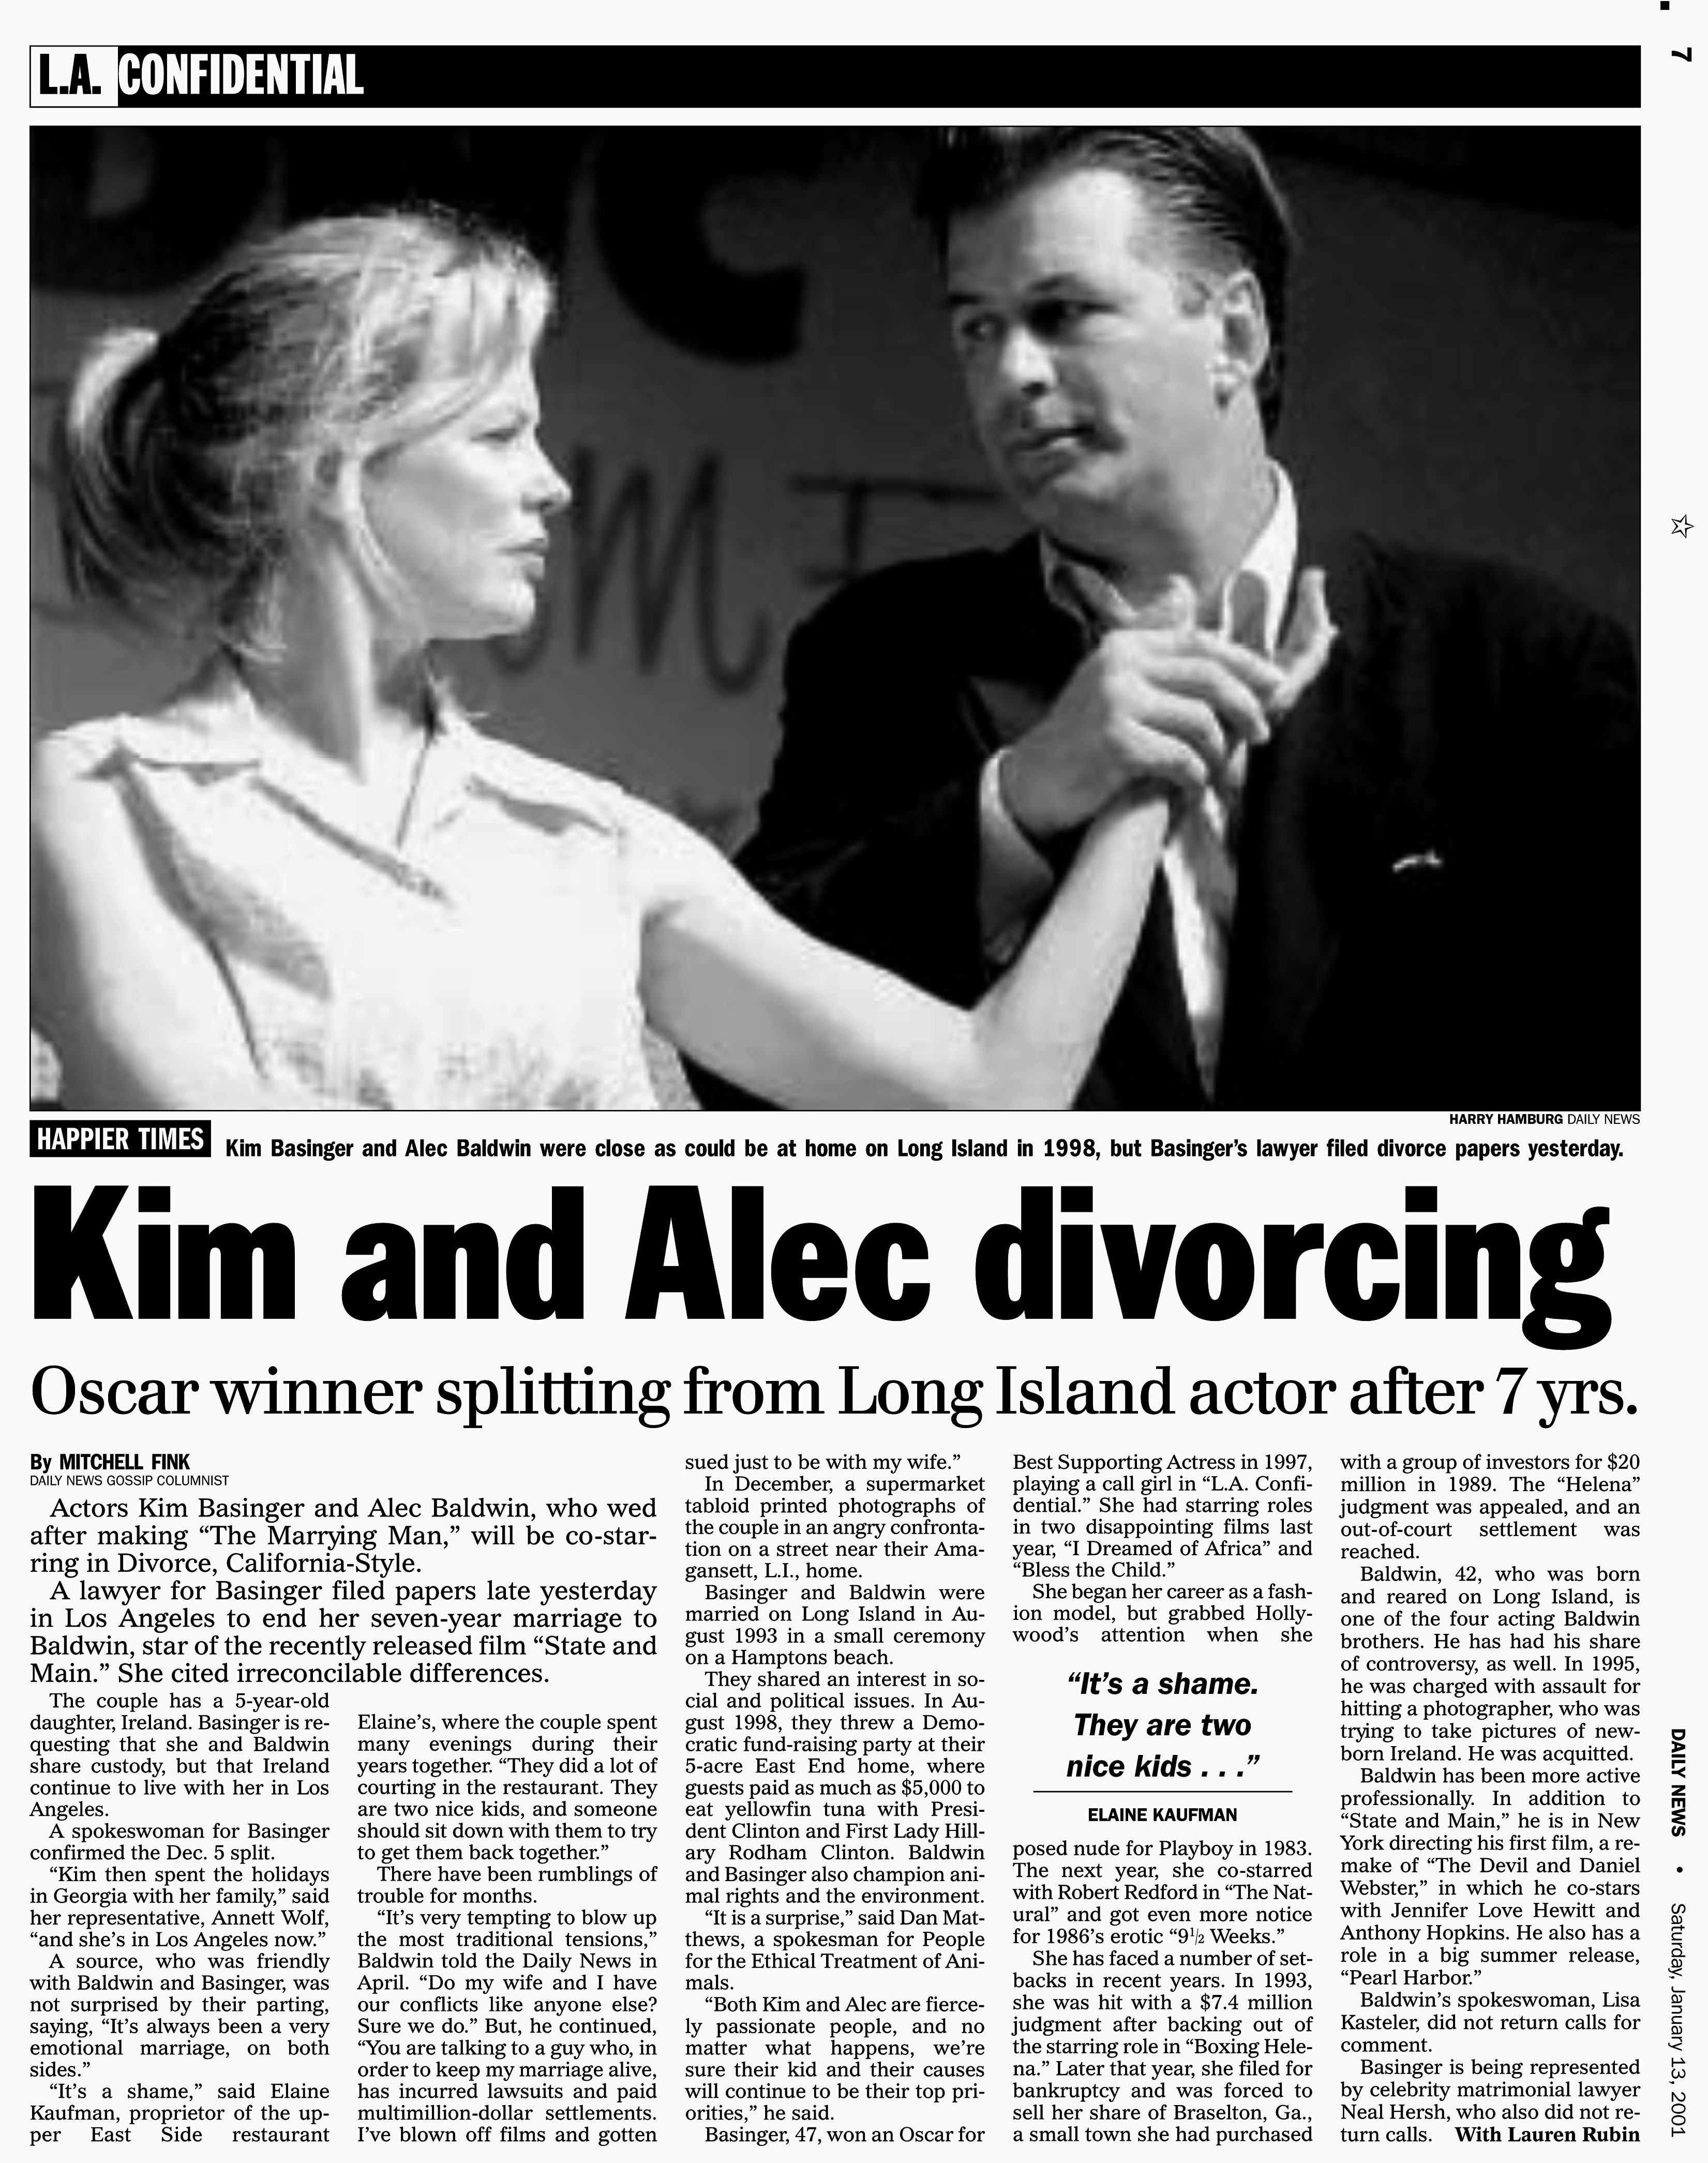 Headline: Kim Basinger and Alec Baldwin  divorcing -- Daily News page 7, January 13, 2001   Source: Getty Images